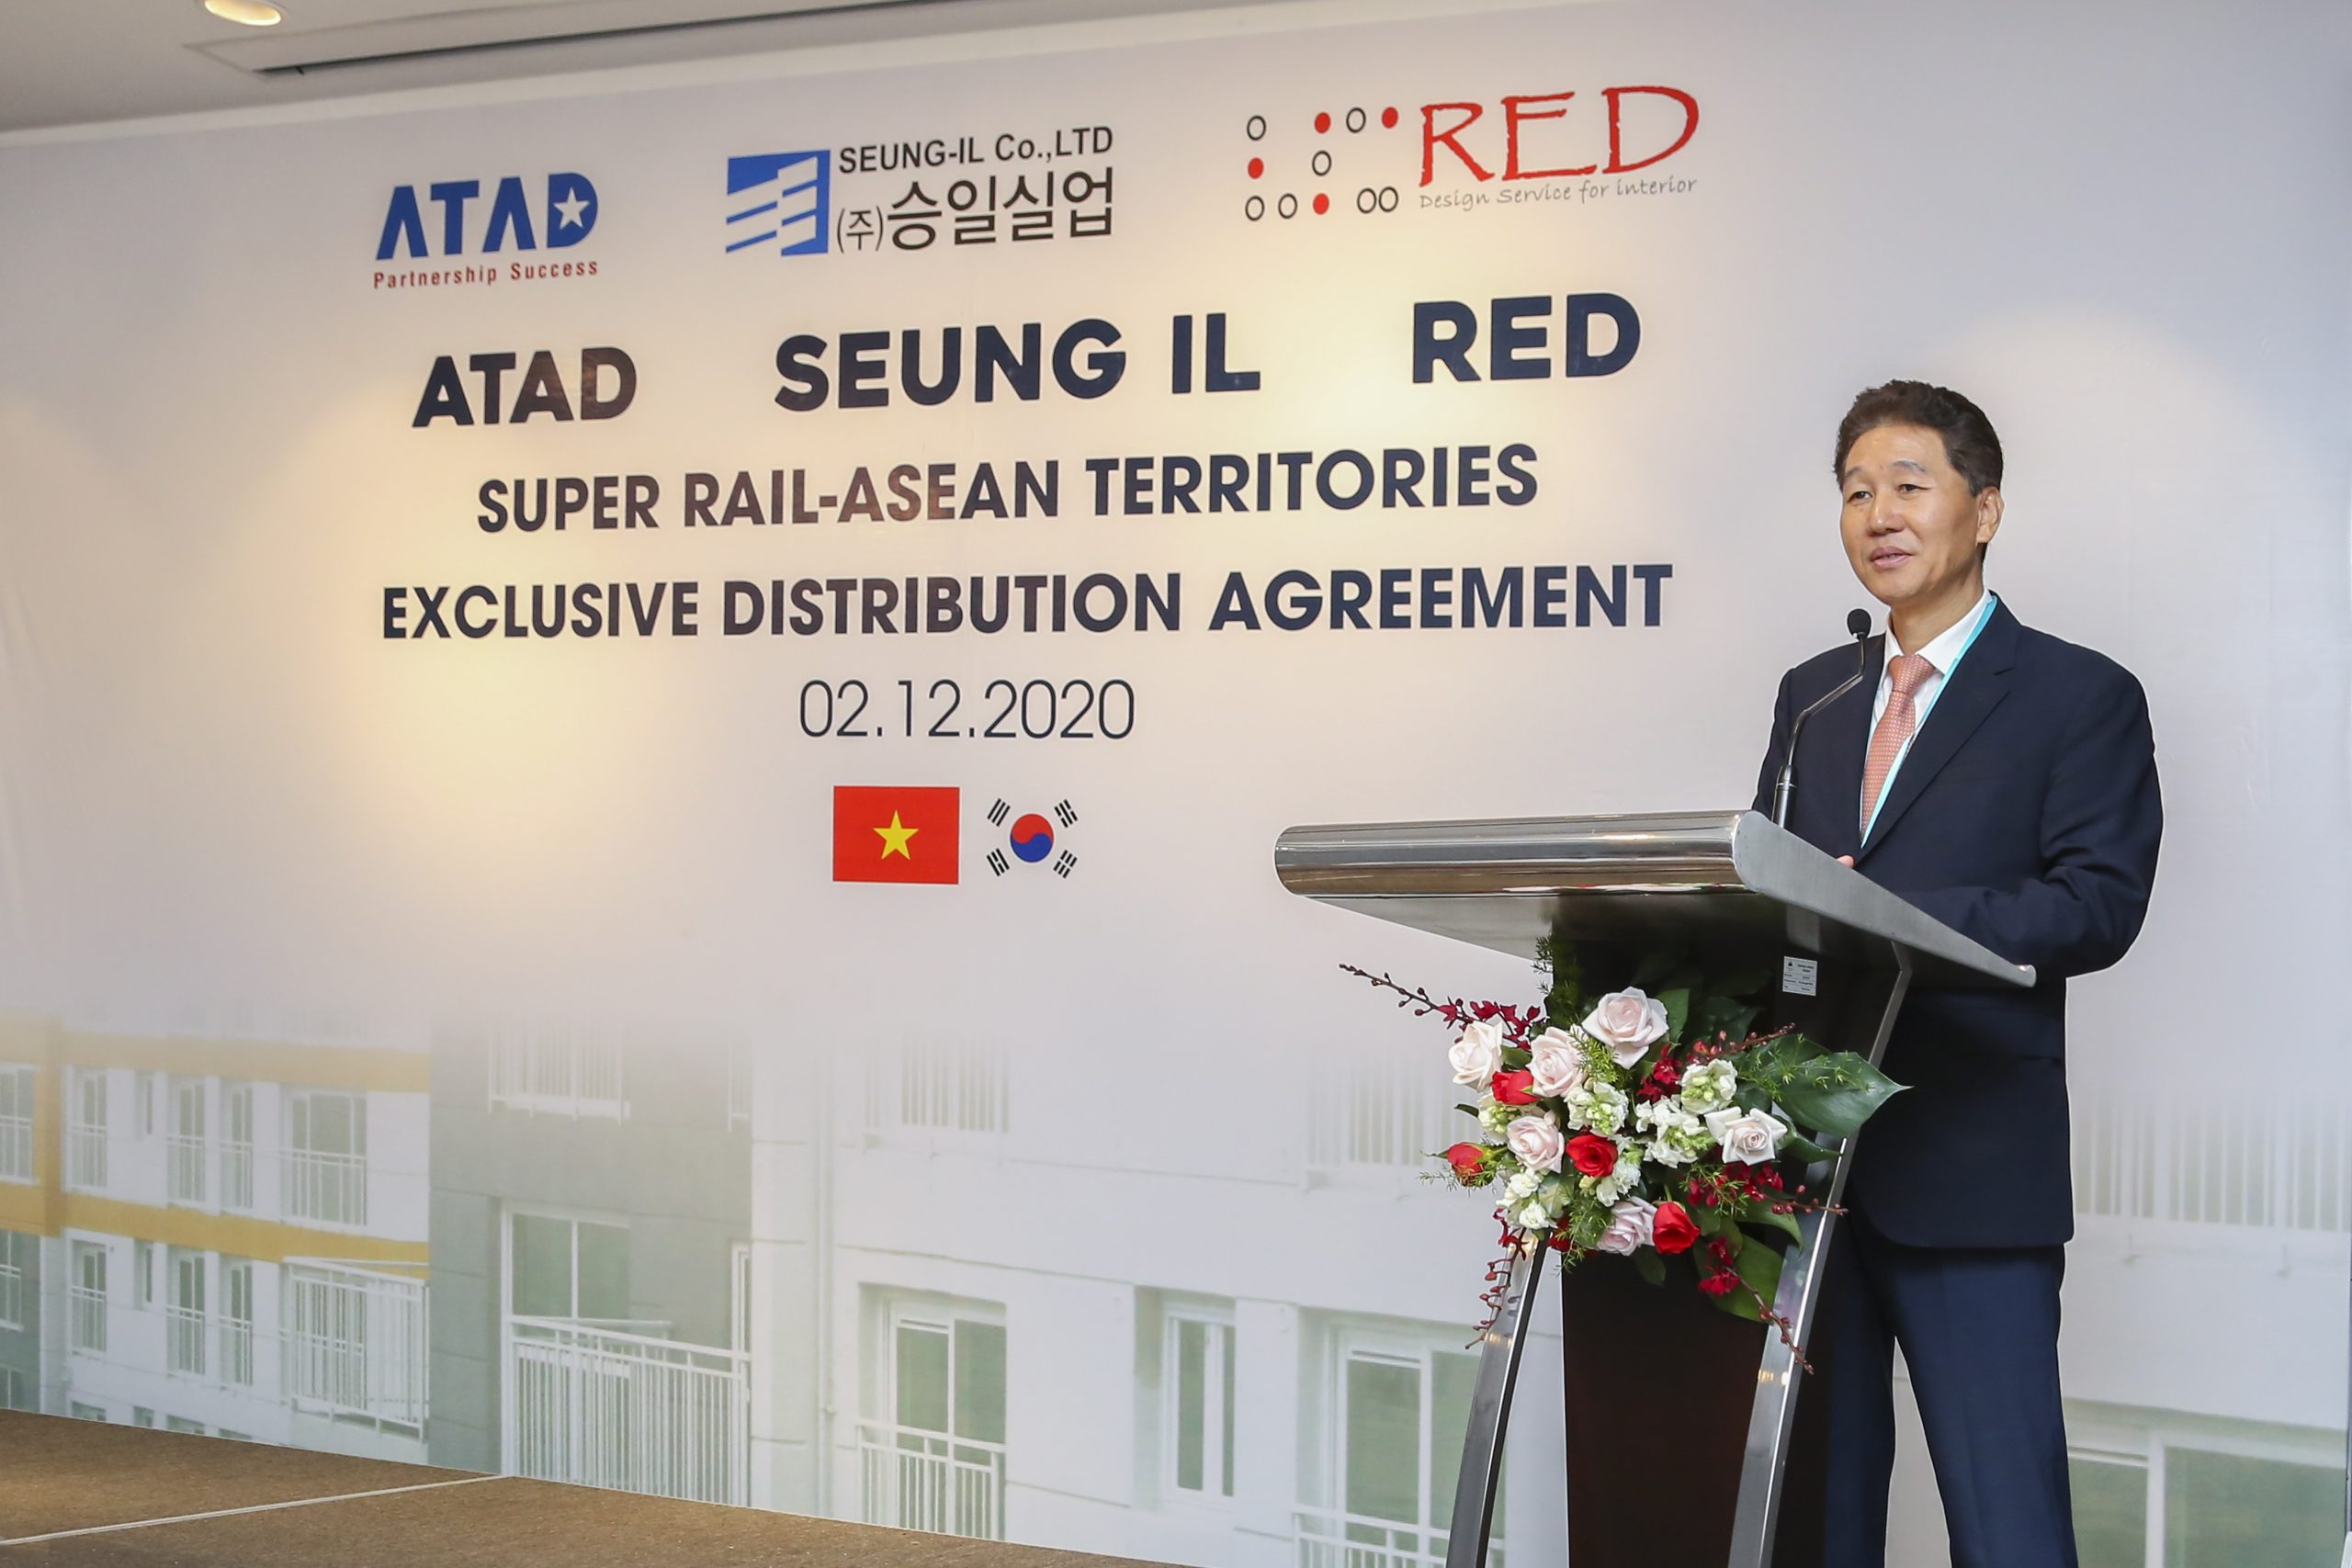 ATAD signed an exclusive distribution agreement for Super Rail – Asean territories with RED company